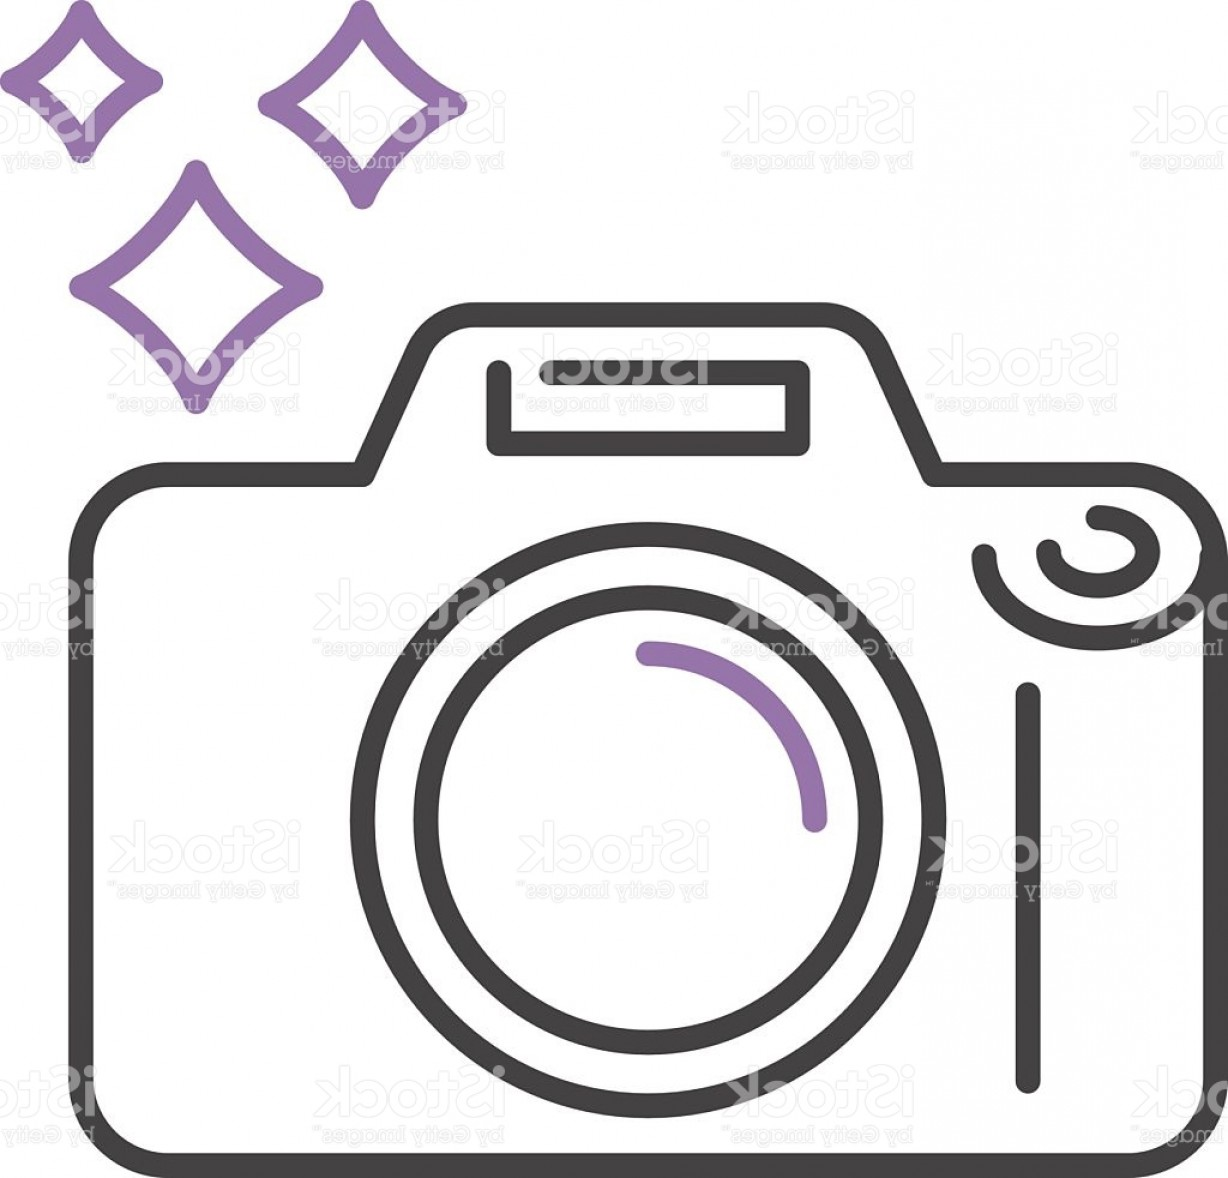 Camera Outline Vector Graphic: Photo Camera Icon Digital Design Lens Photography Symbol Vector Outline Gm